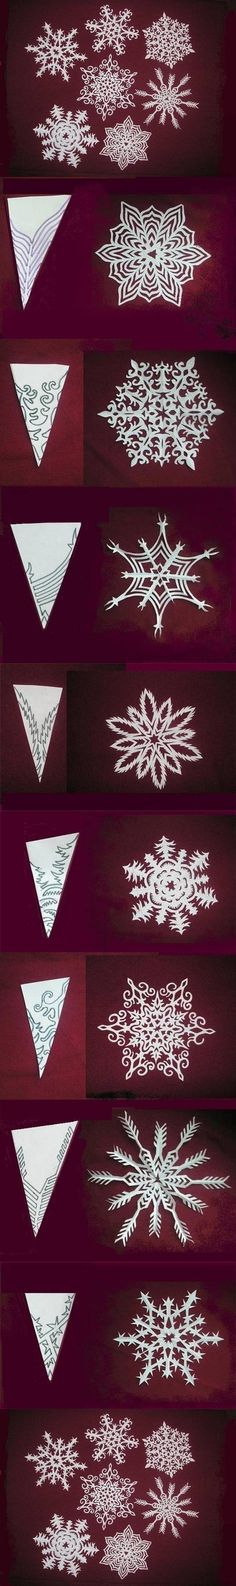 "An old nickname of mine is ""Snowflake."" Always wanted to learn to make really nice ones. This is certainly some inspiration. -Jens"